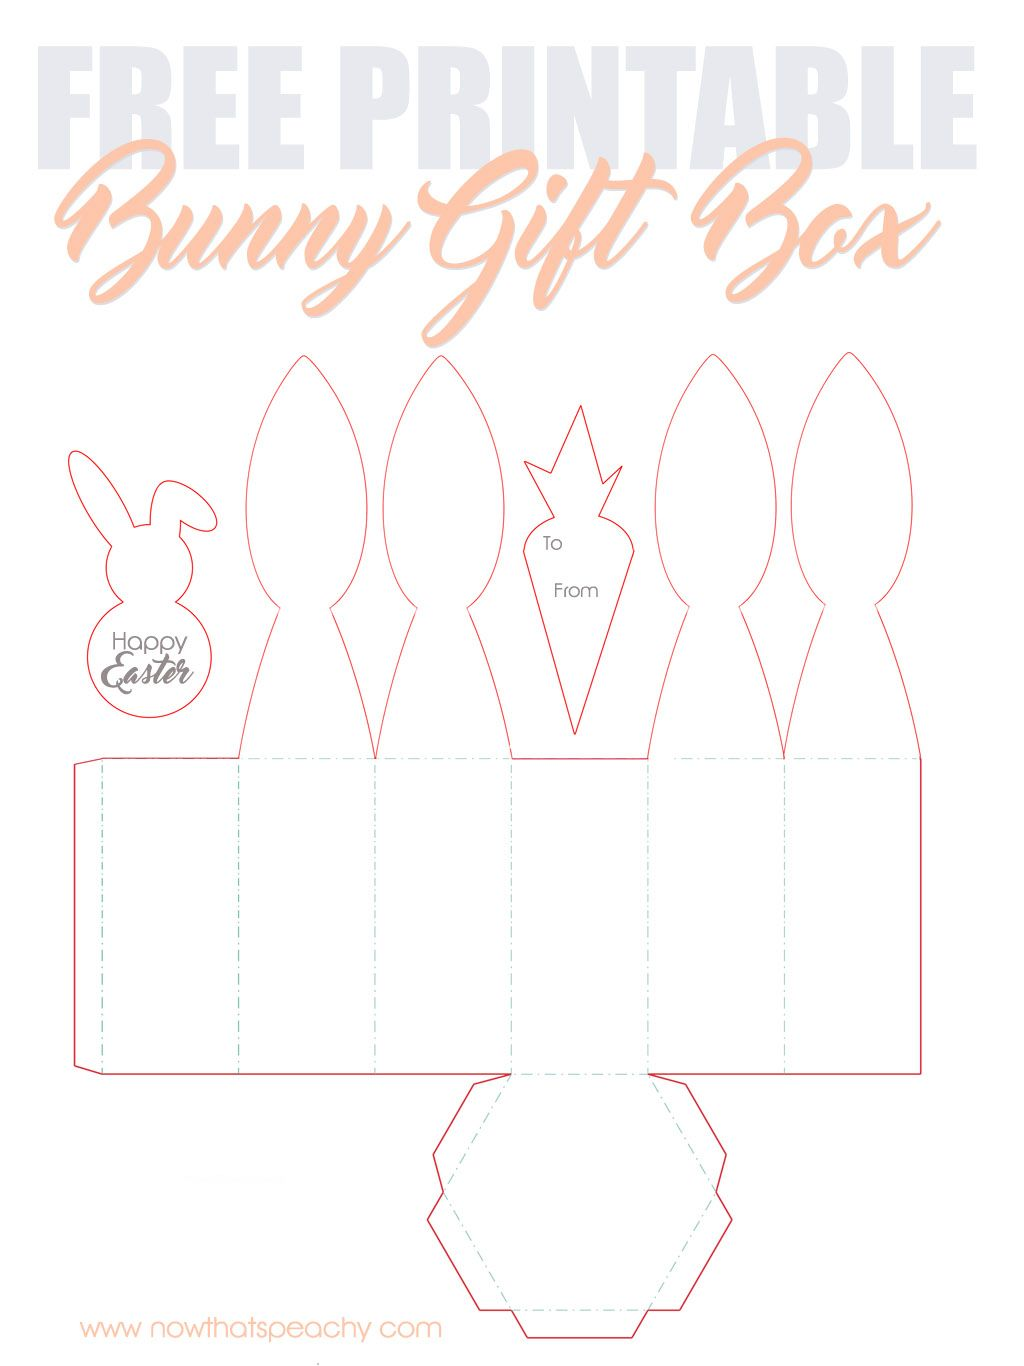 Kasten Basteln Free Bunny Ears Gift Box Printable For Easter Easter Ideas